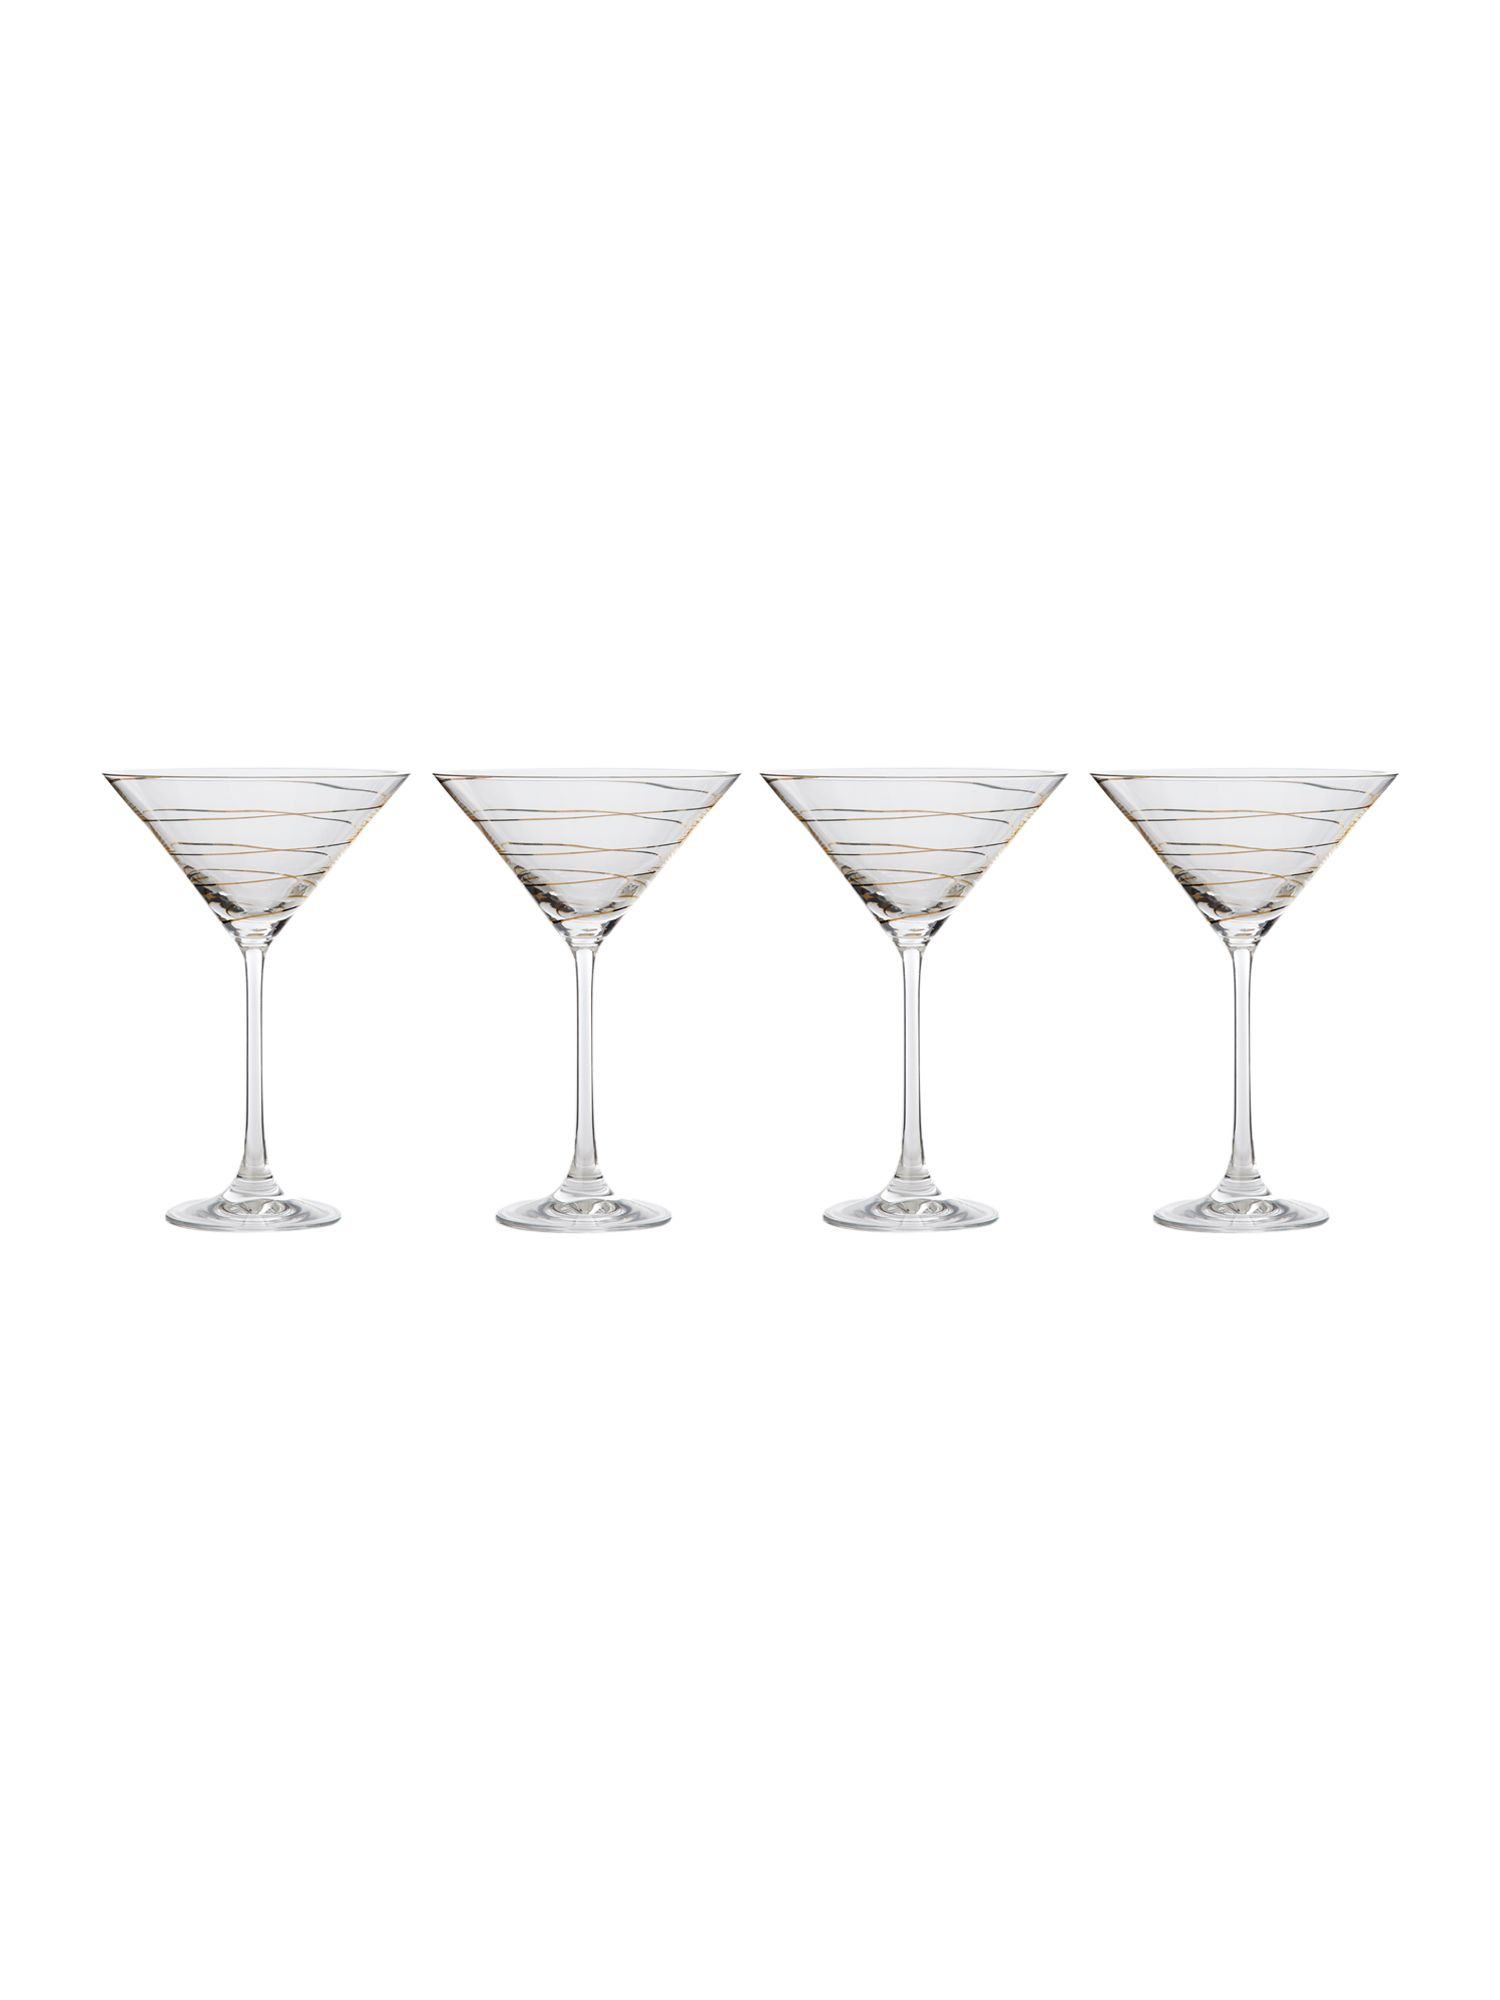 Gold spiral martini glasses, set of 4